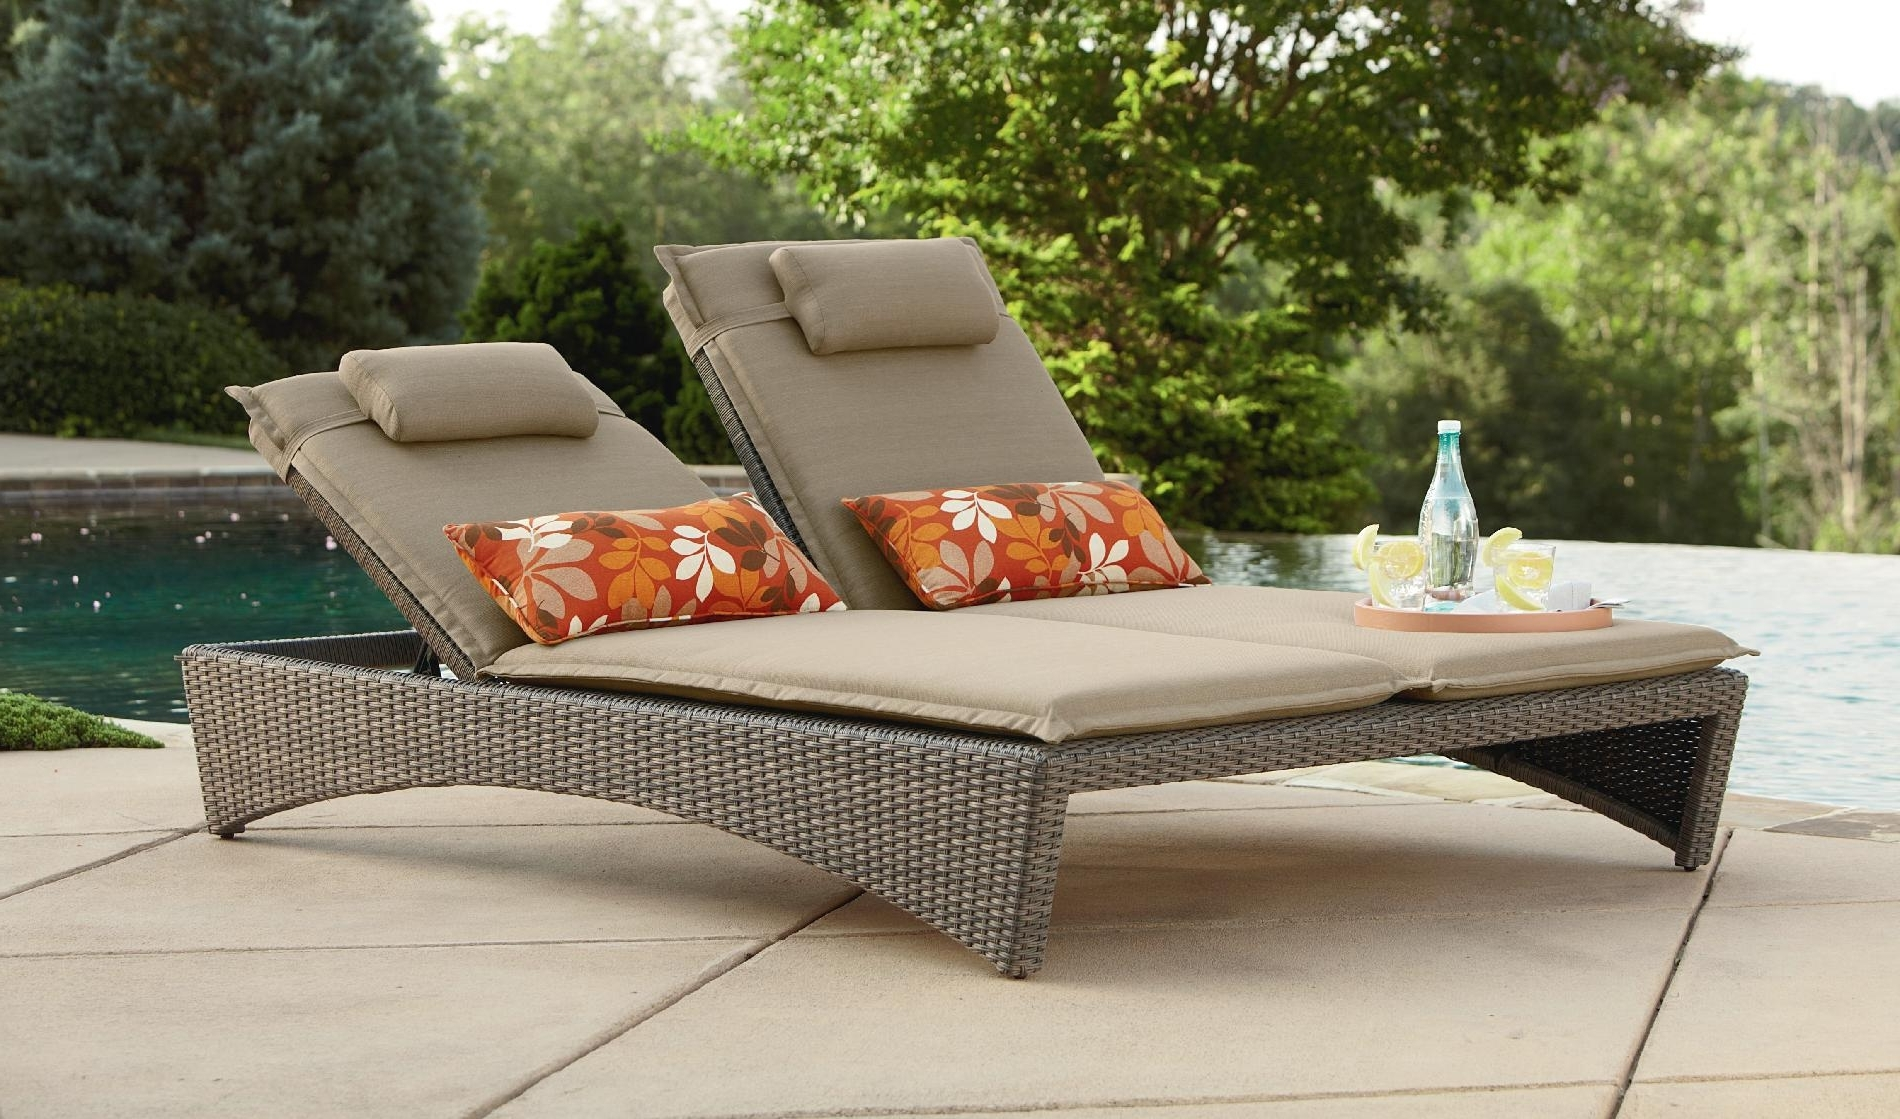 Double Chaise Lounge Outdoor Chairs Regarding Well Liked Picture 3 Of 35 – Walmart Patio Lounge Chairs Luxury Patio (View 4 of 15)